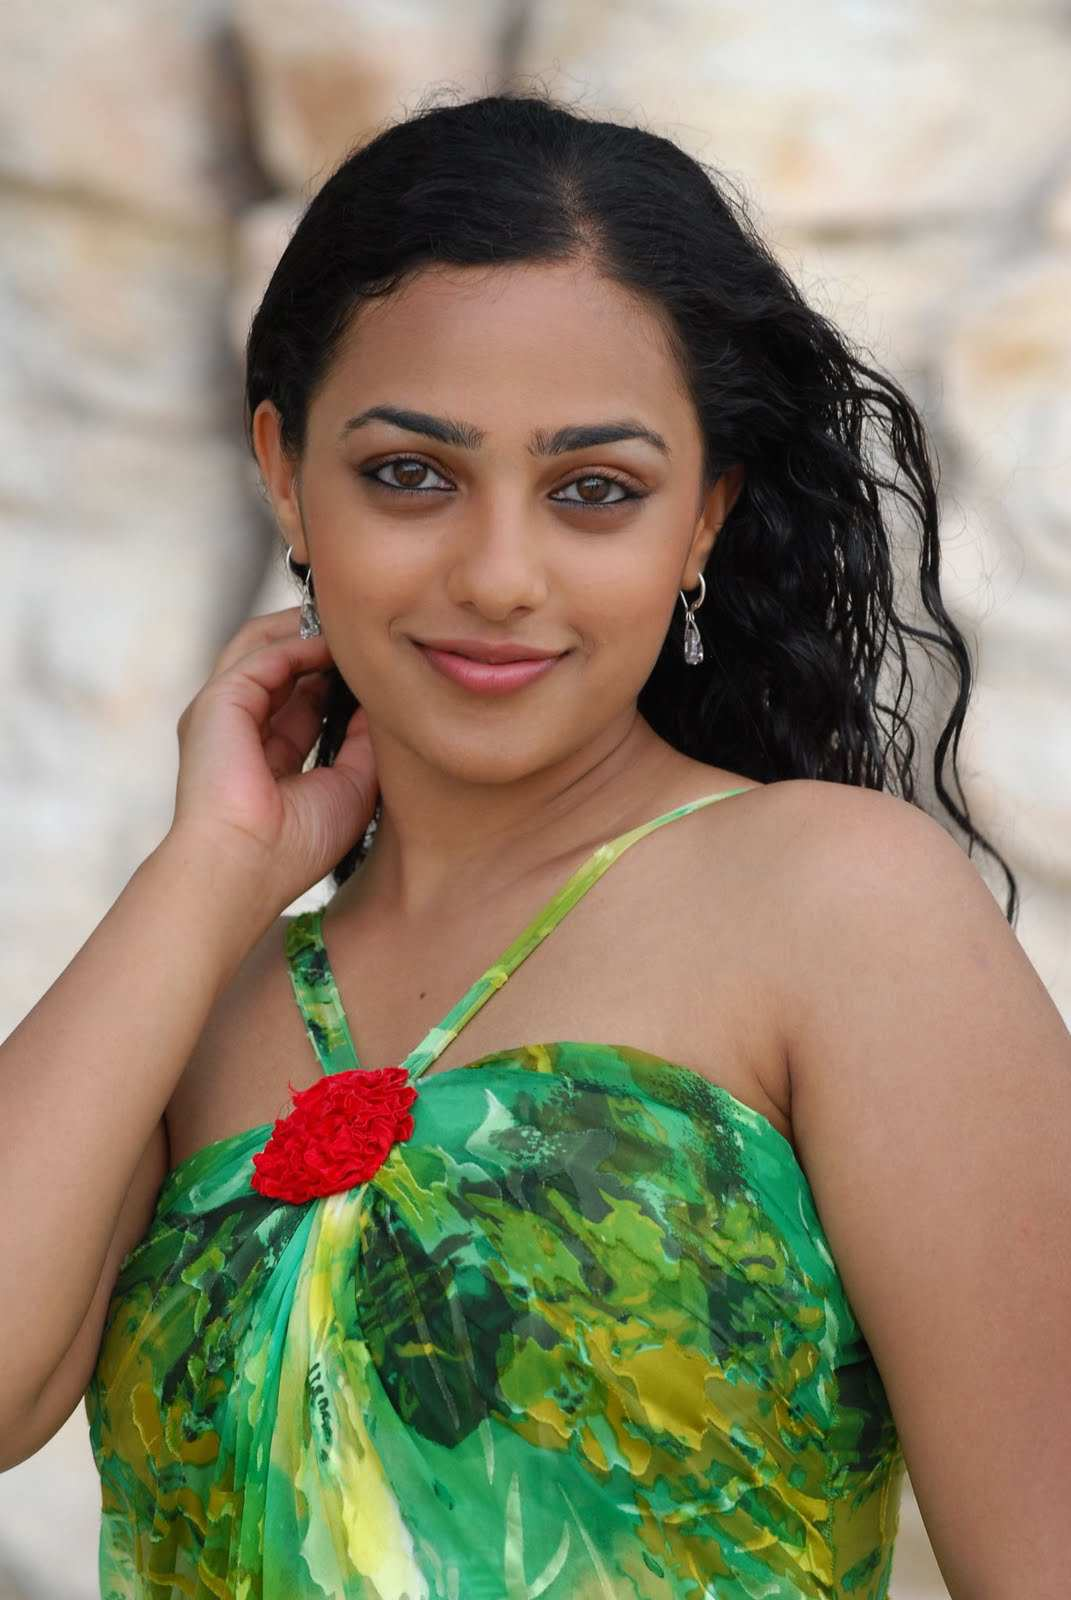 Tollywood Girl Smilling Face Close Up Photos Of Nithya Menon In Green Top